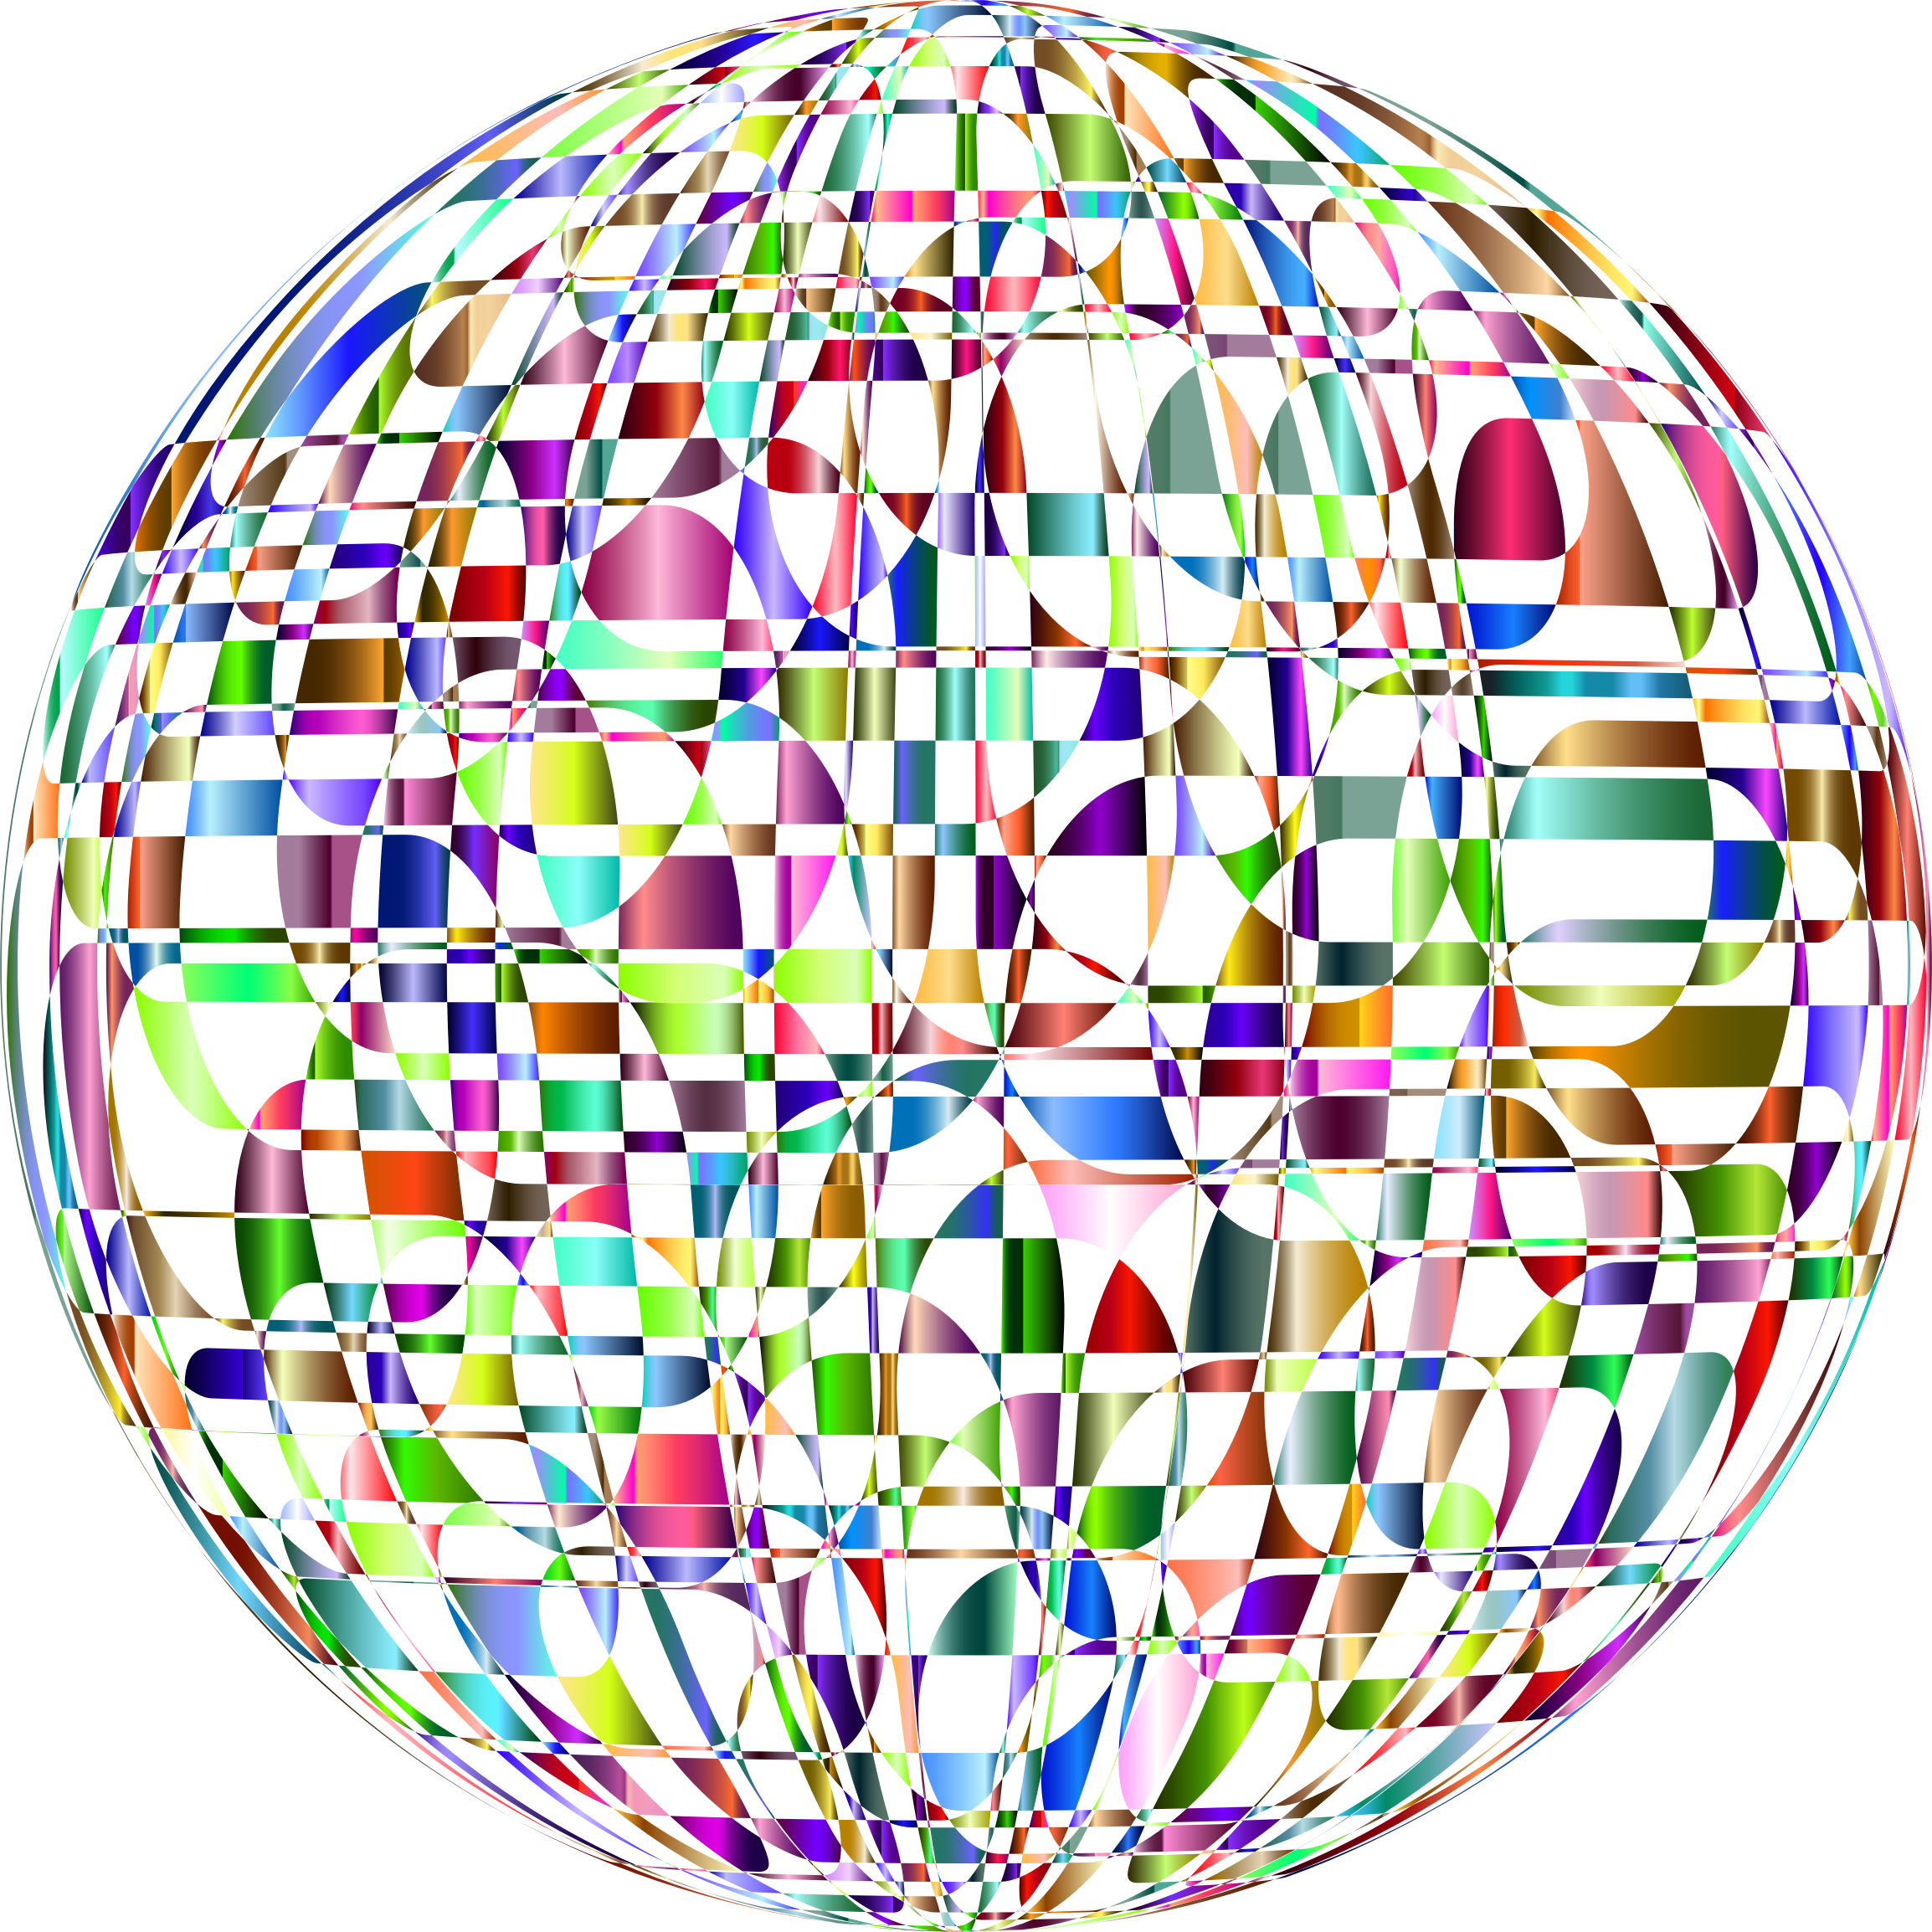 Abstract Chromatic Orb No Background by GDJ